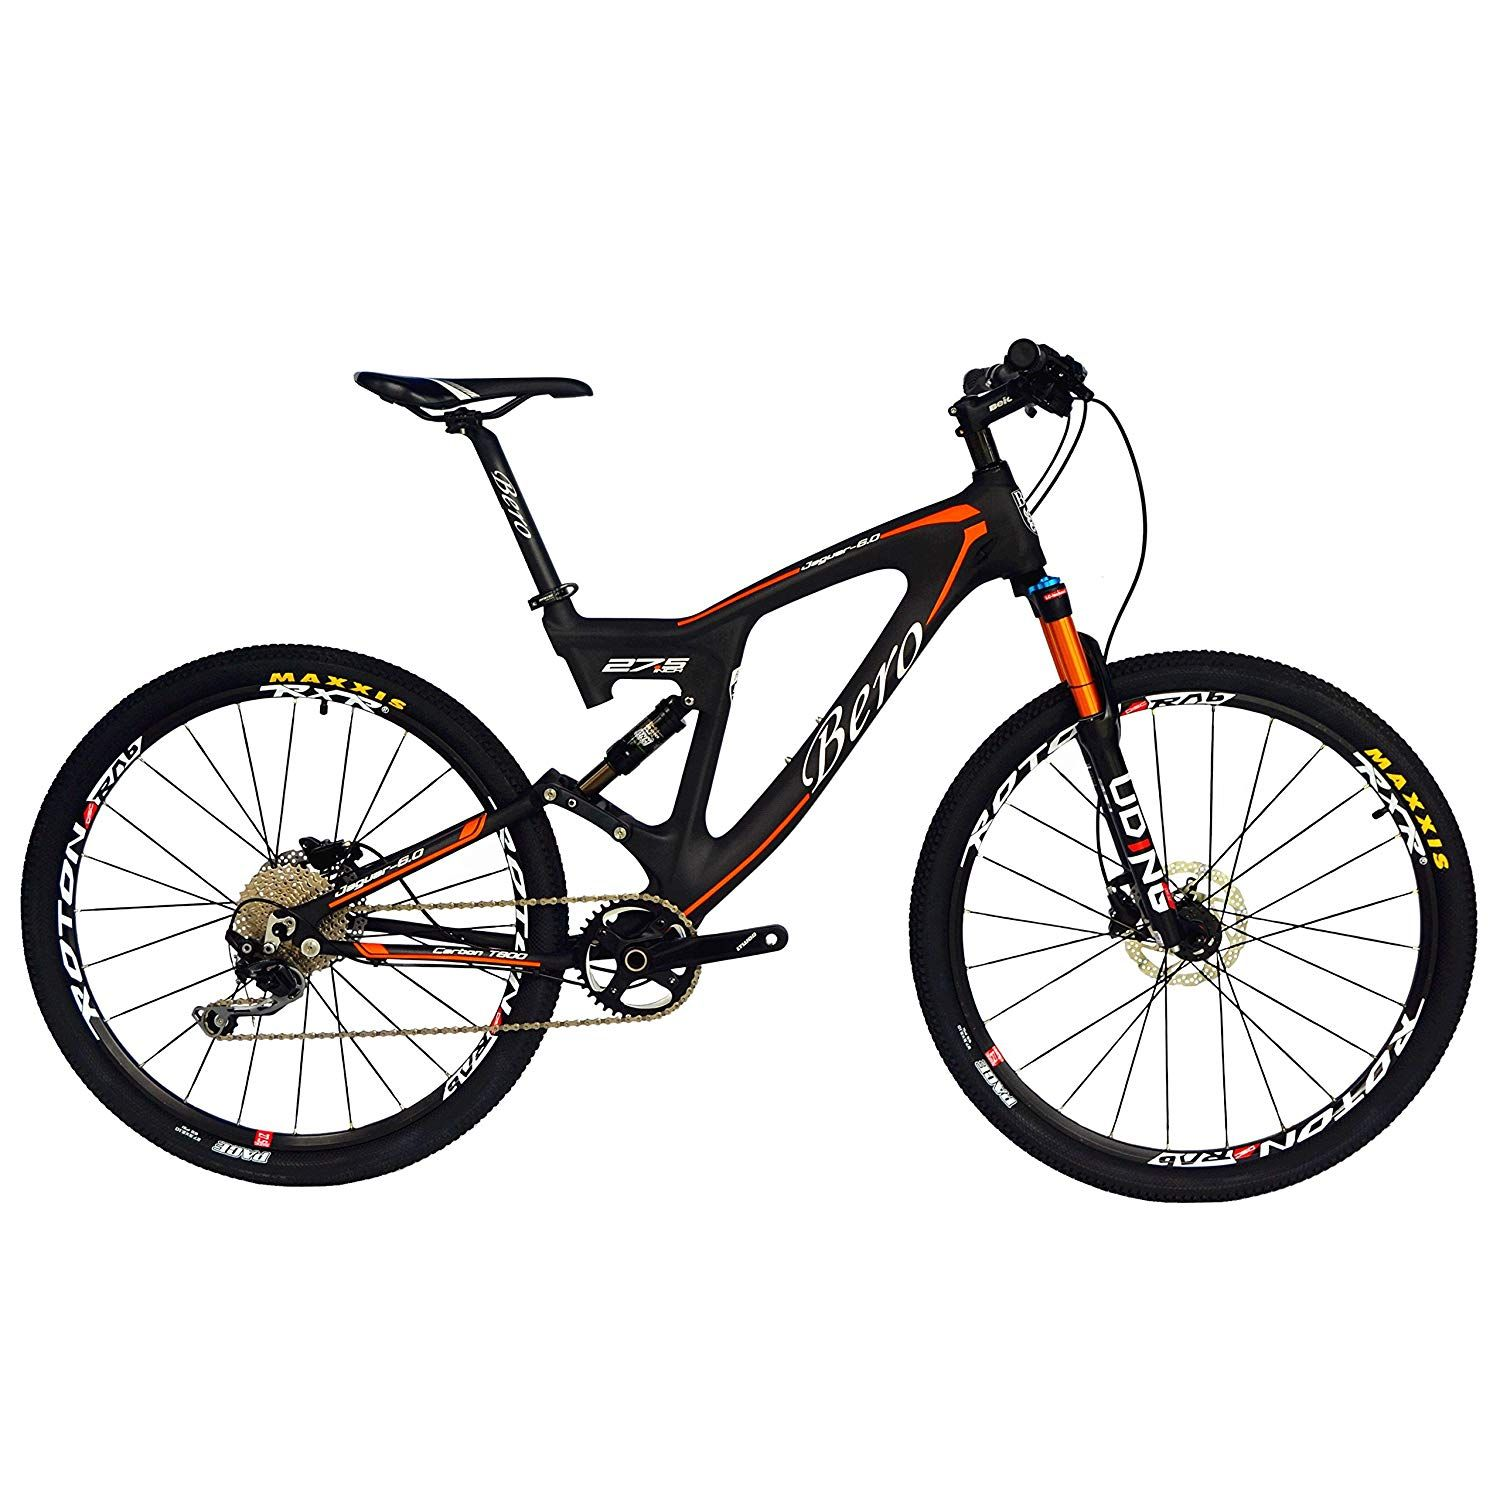 BEIOU Carbon Dual Suspension Mountain Bicycles   Bicycle